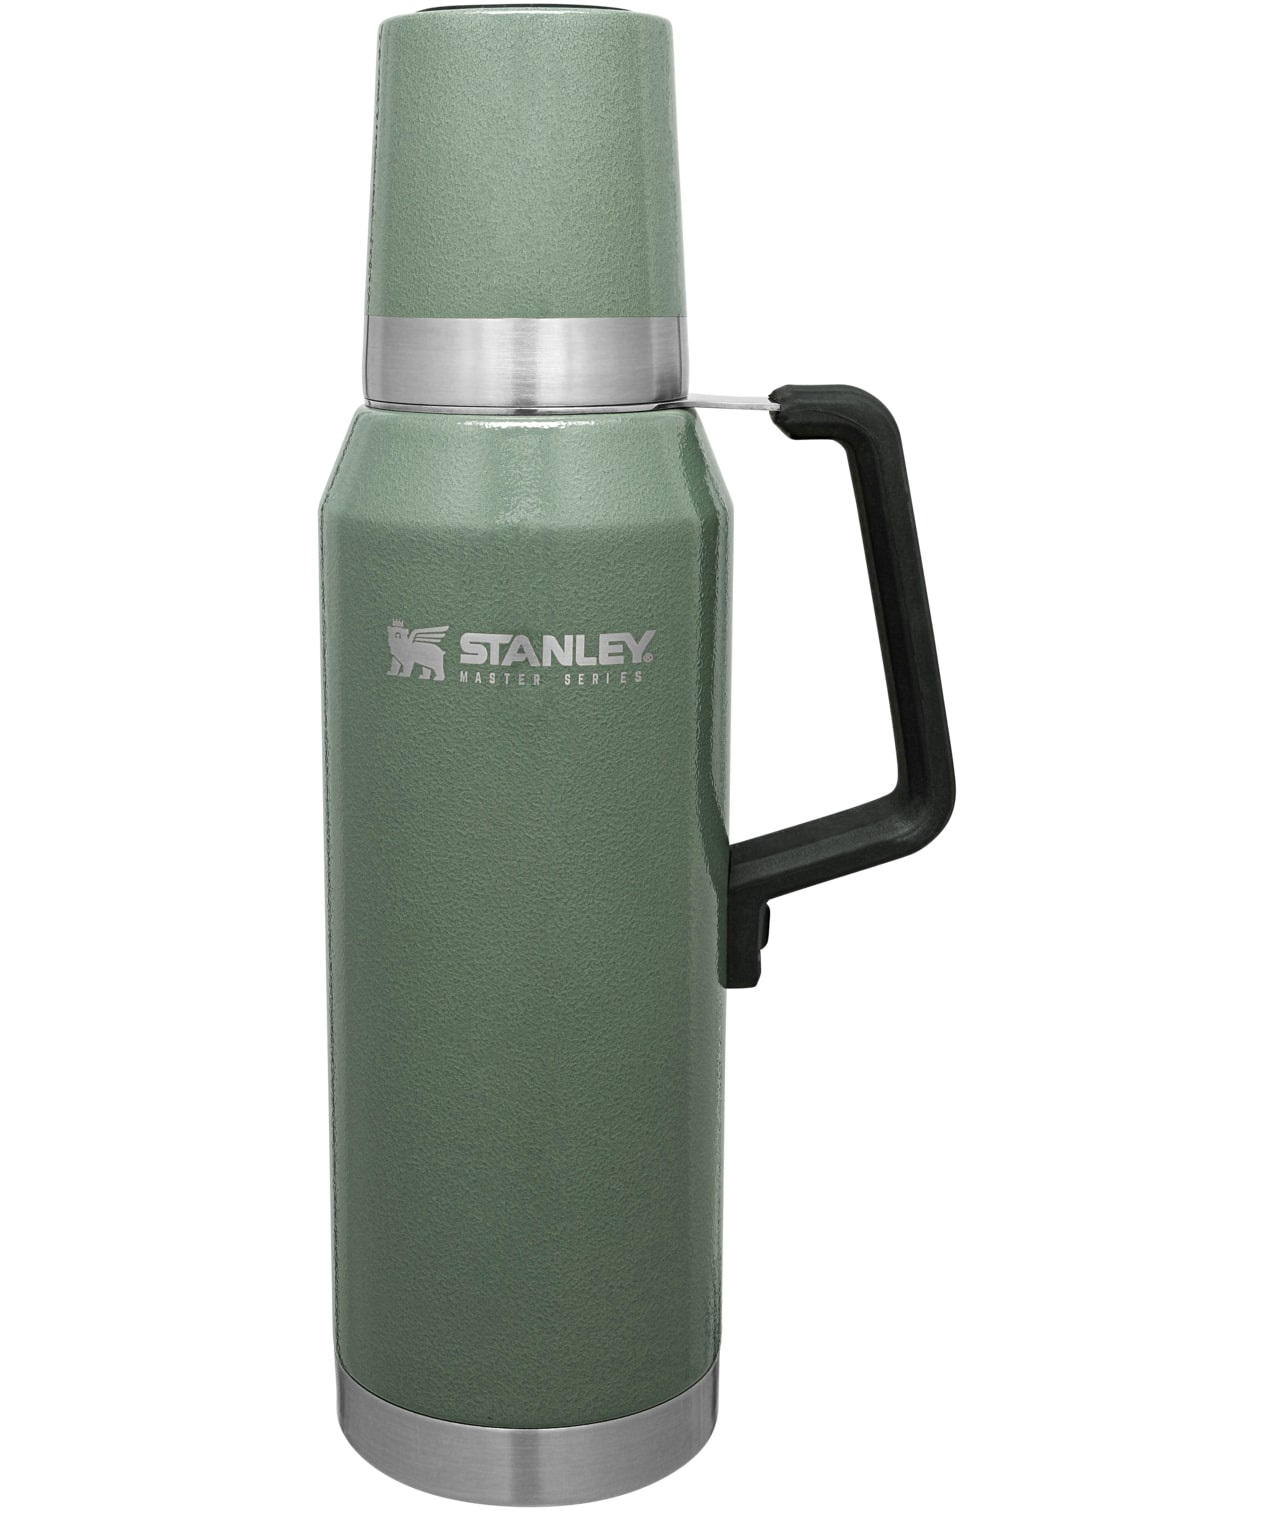 Bình giữ nhiệt Stanley Master Unbreakable Thermal 1.4QT | 1.3L